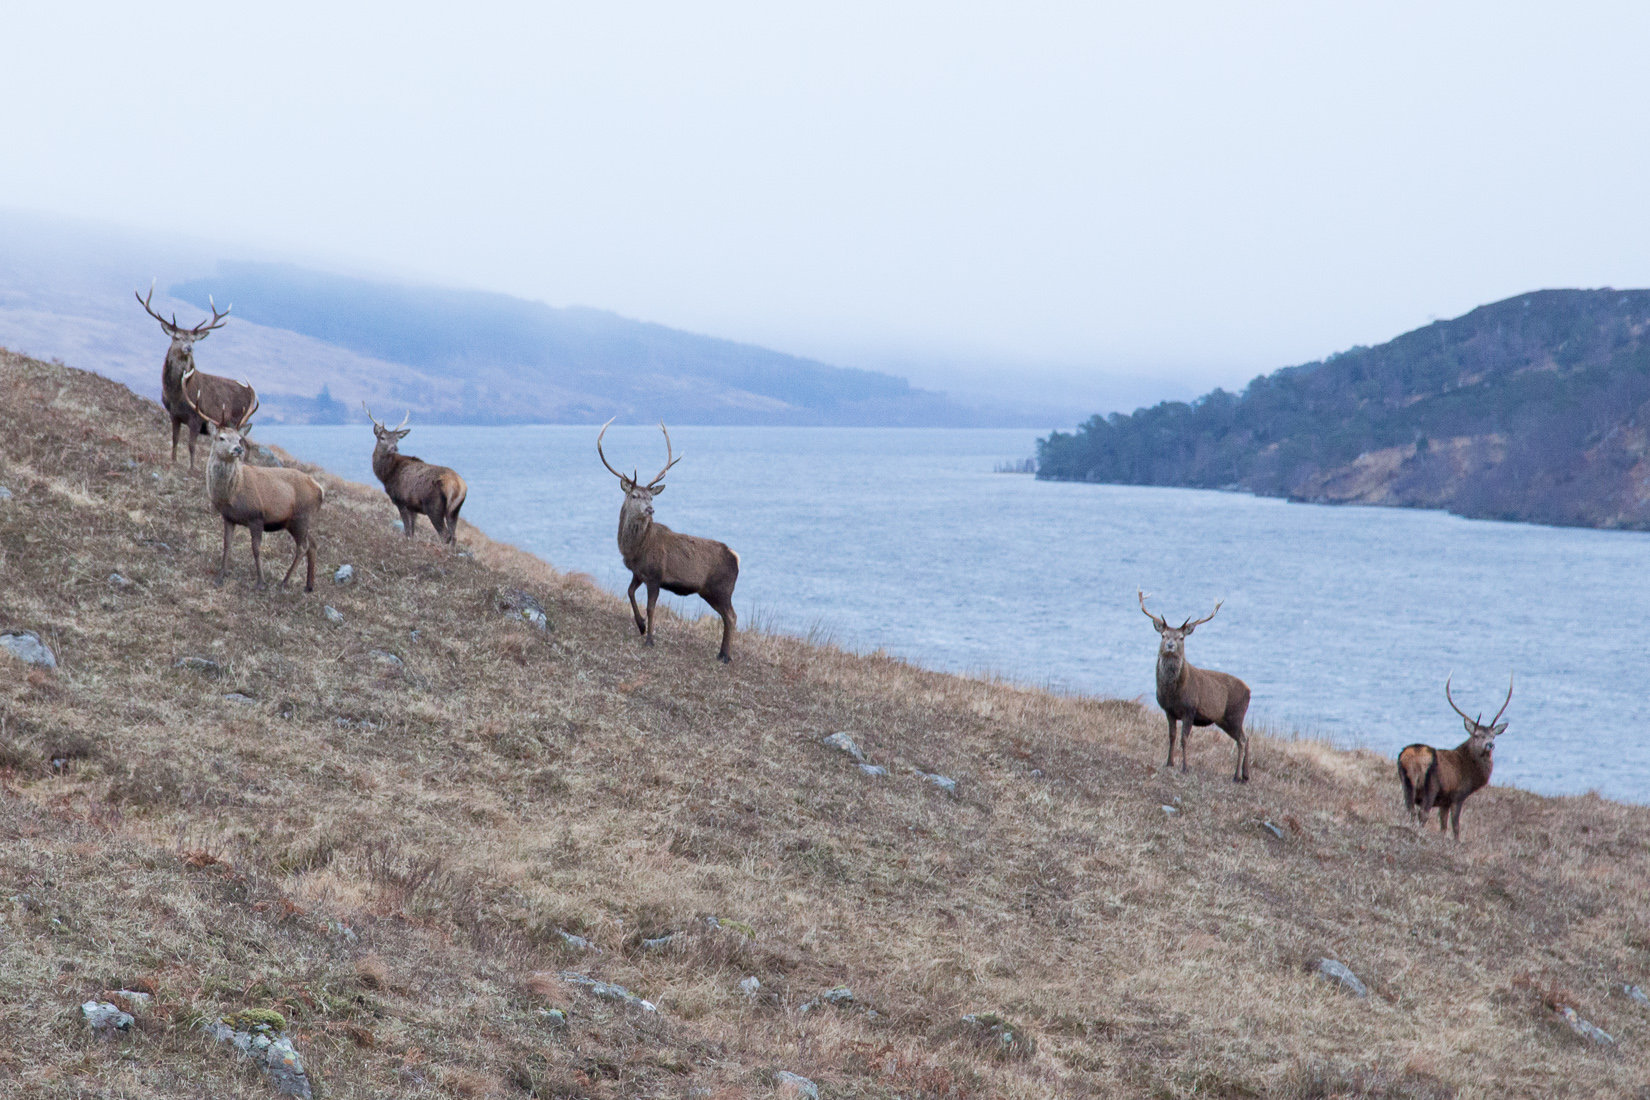 Deer in front of Loch Arkaig